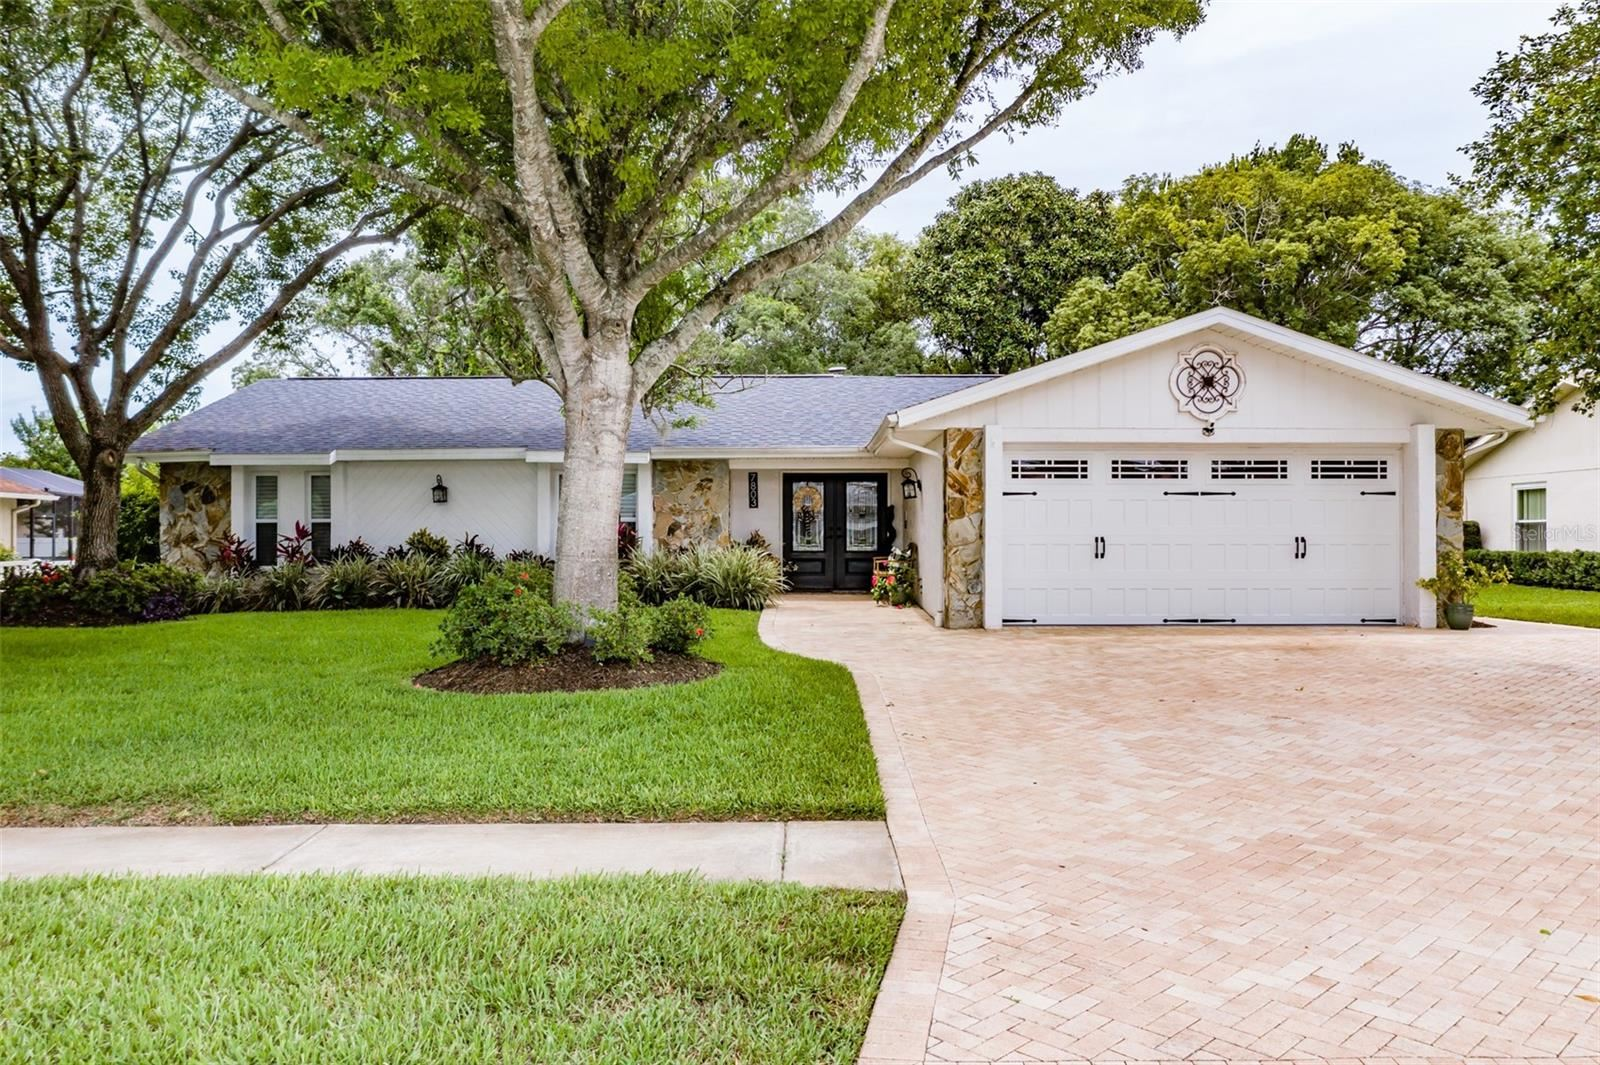 7803 SNAPPING TURTLE COURT, Hudson, FL 34667 - MLS#: T3313496